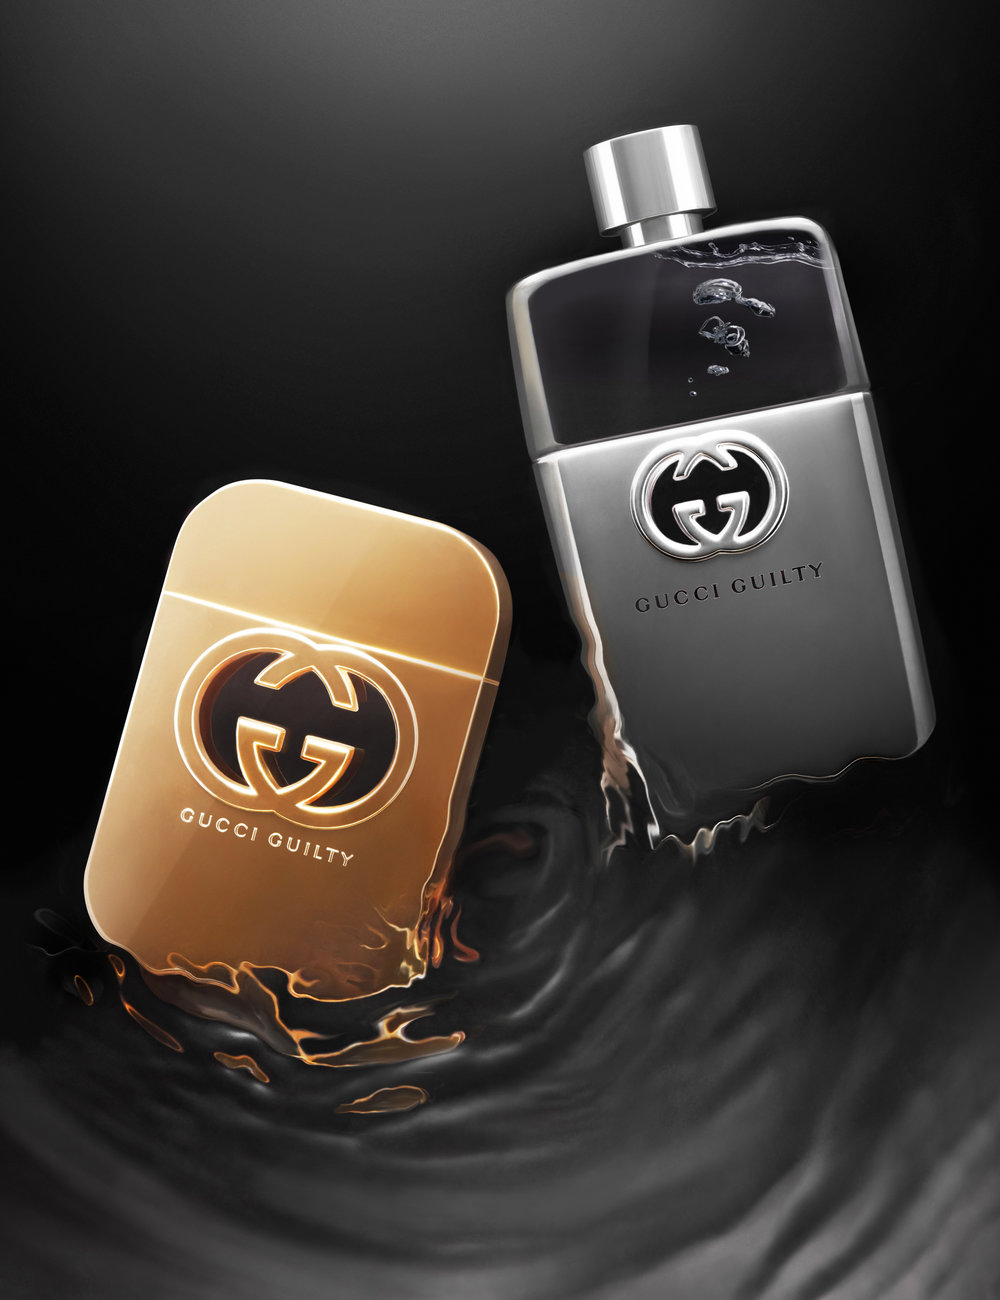 gucci-guilty-liquid-ripple-creative-still-life-photography-fragrance-perfume-2.jpg